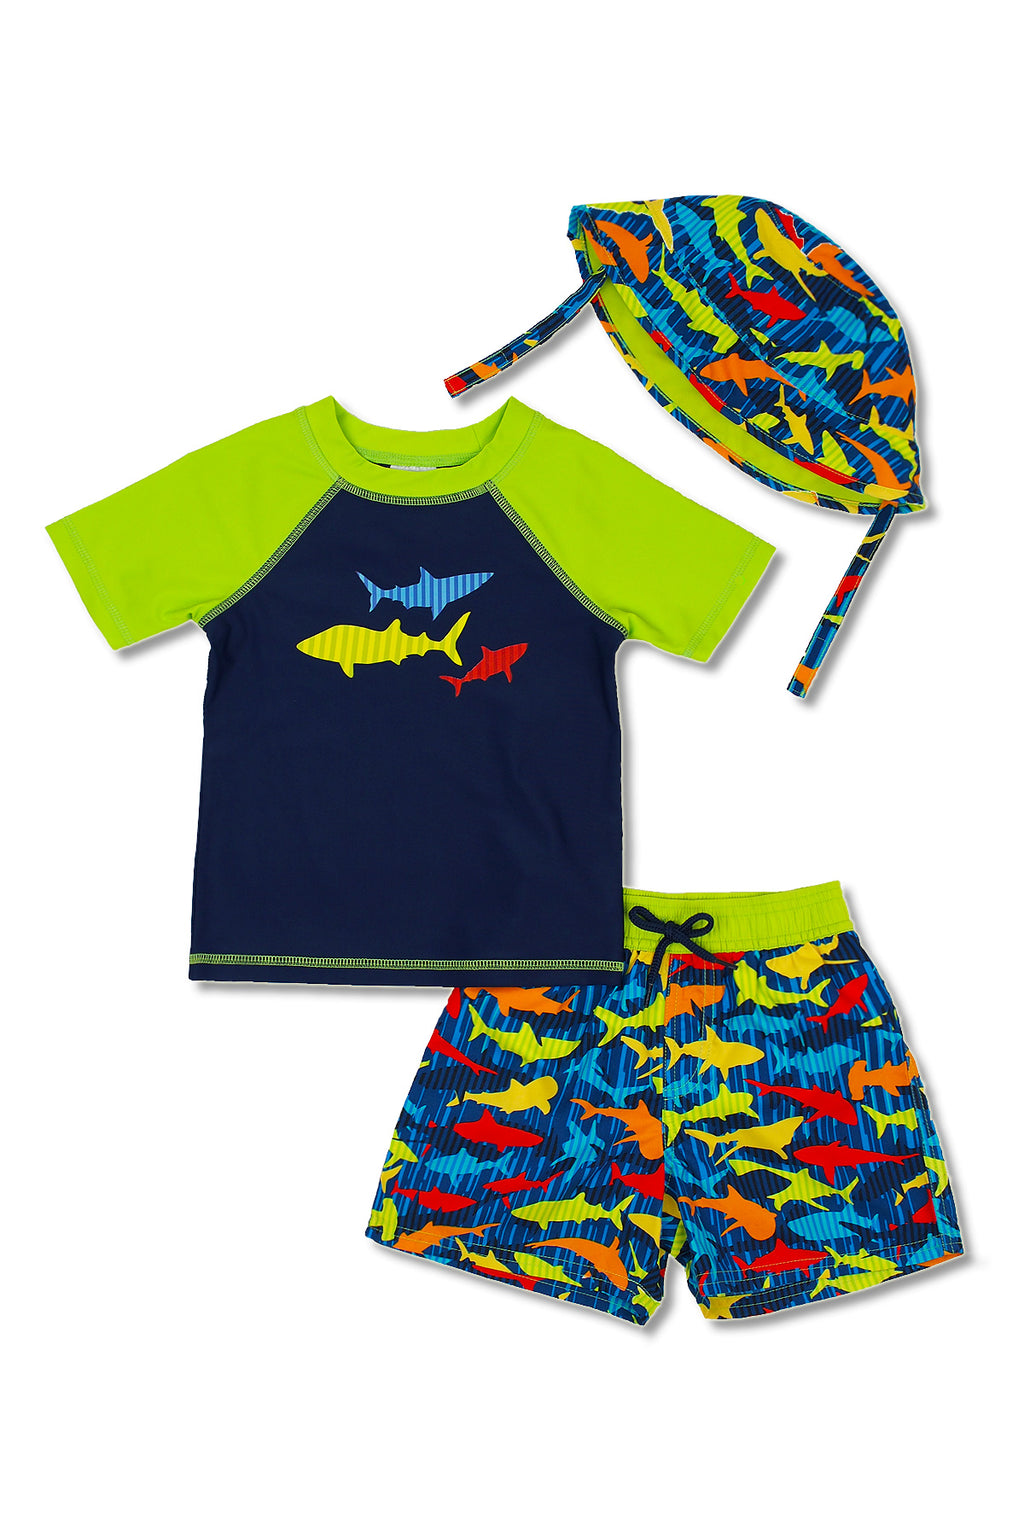 Boys Stripe Shark Short Sleeve Rash Guard & Swim Trunks With Bucket Hat 3pc Set, Lime